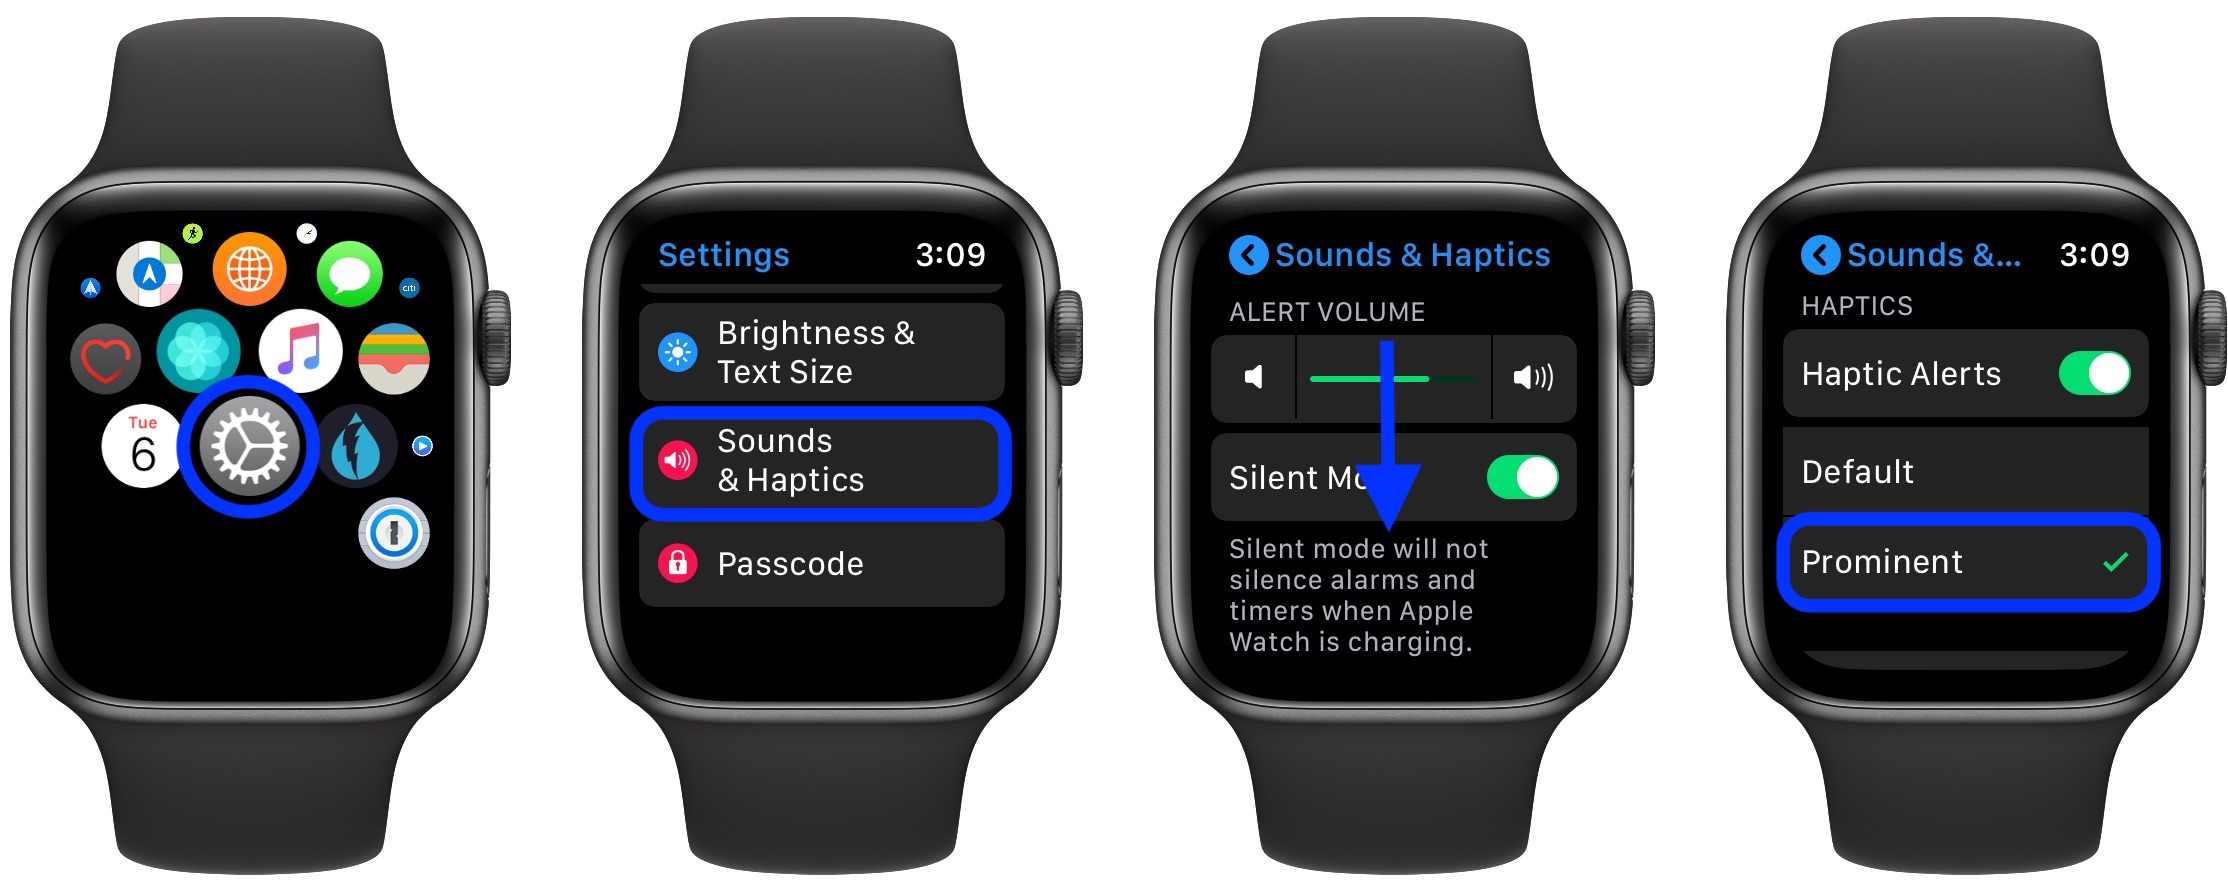 turn up haptic vibration feedback on Apple Watch